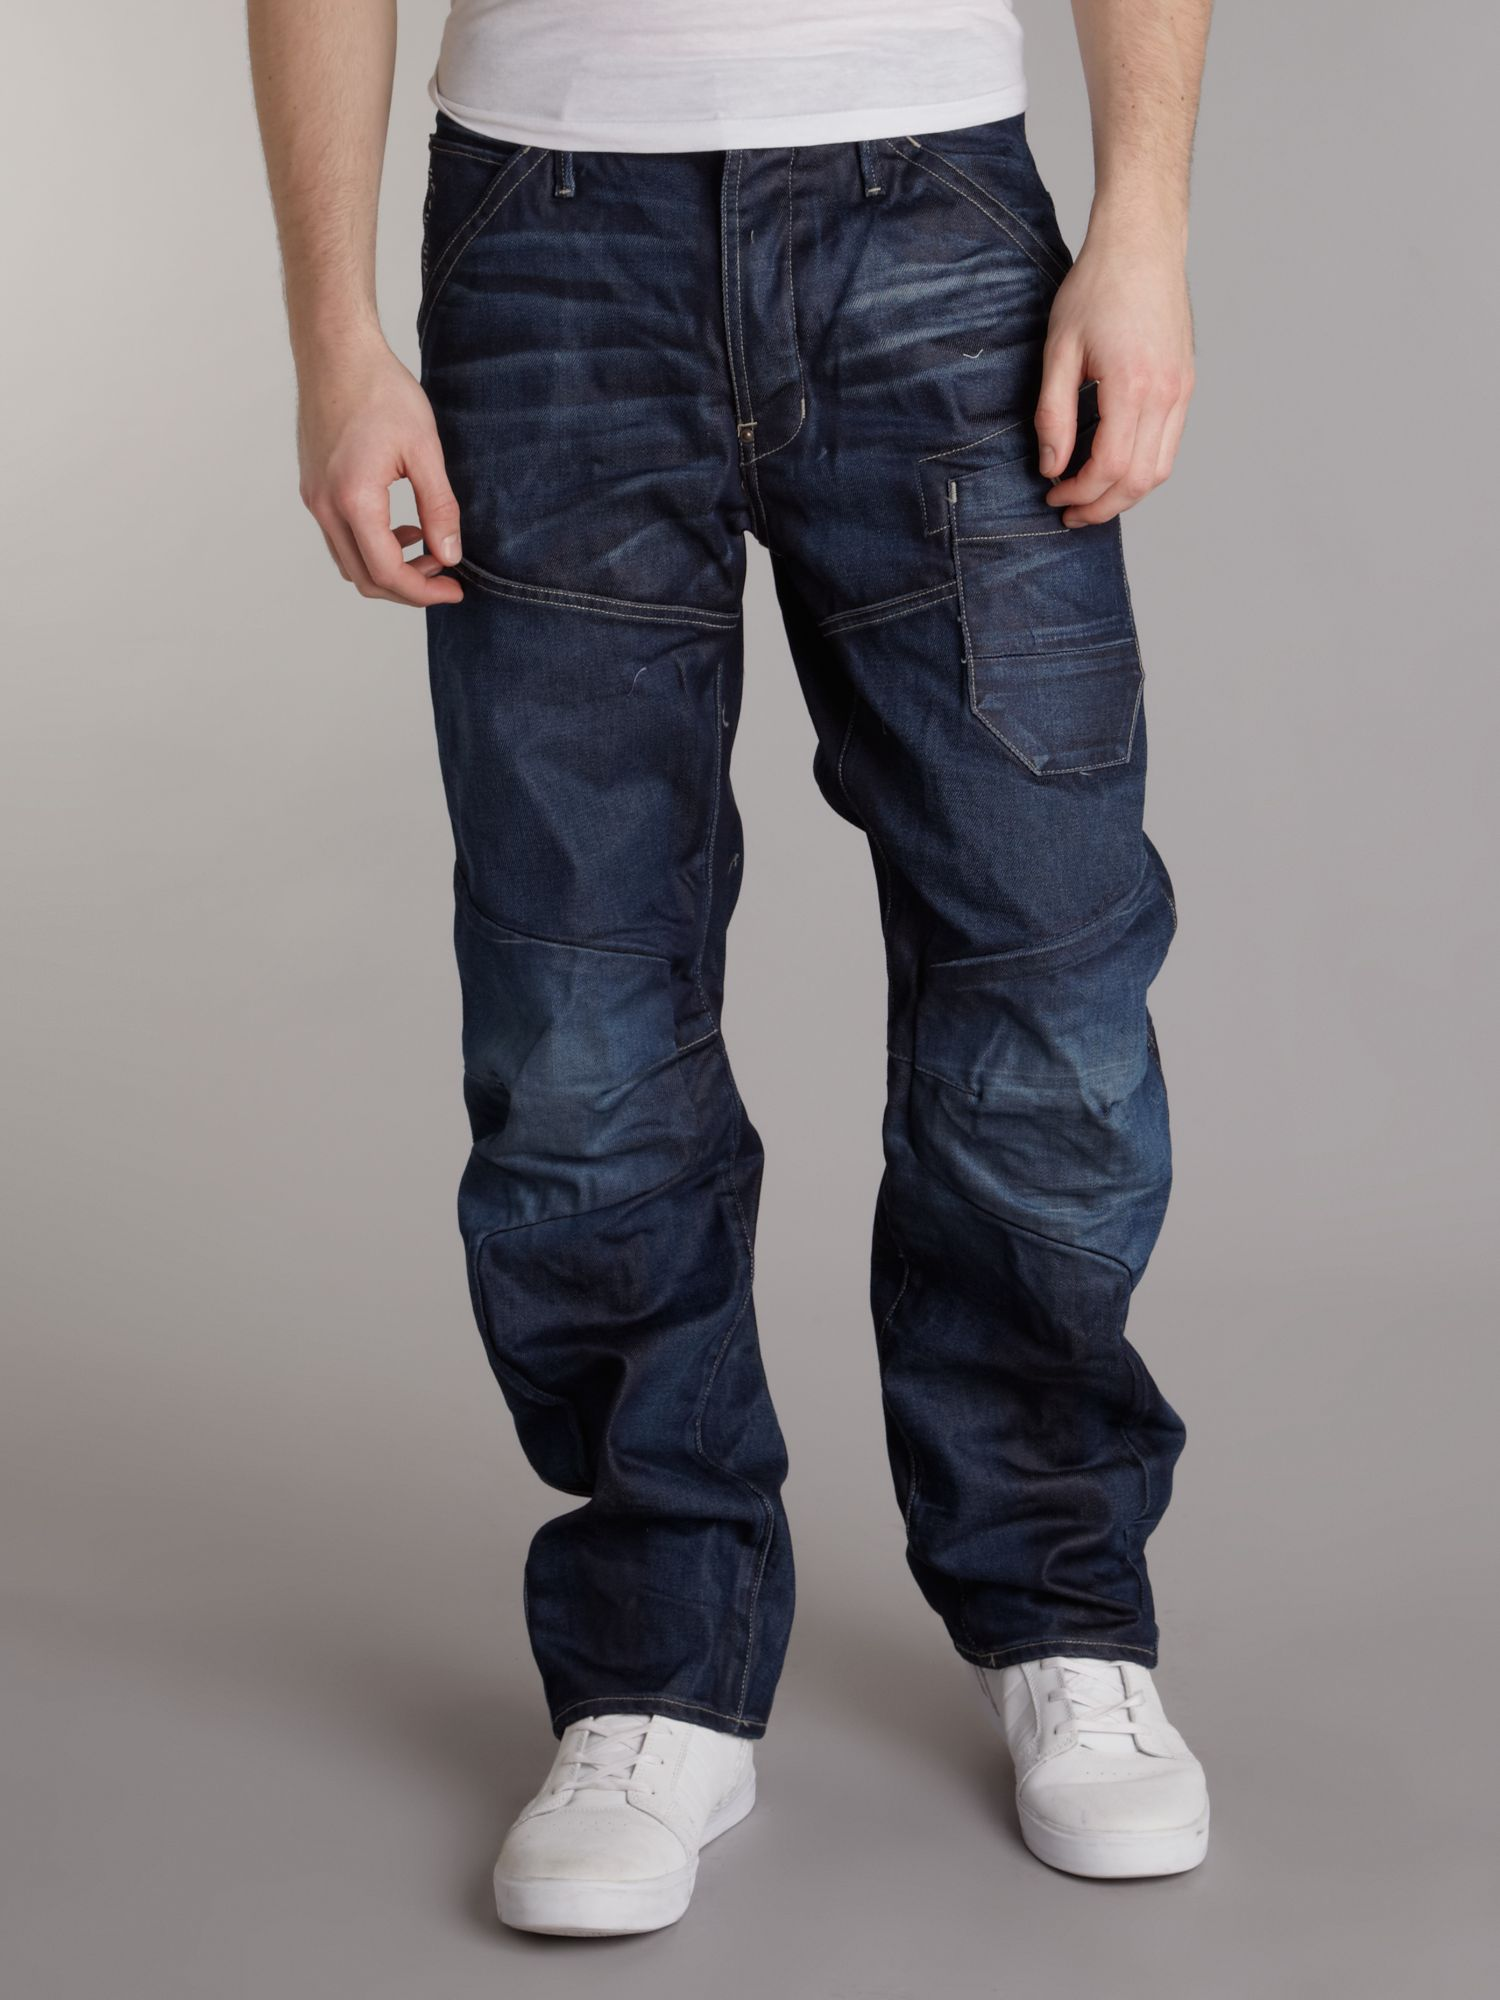 lyst g star raw loose fit washed jeans in blue for men. Black Bedroom Furniture Sets. Home Design Ideas